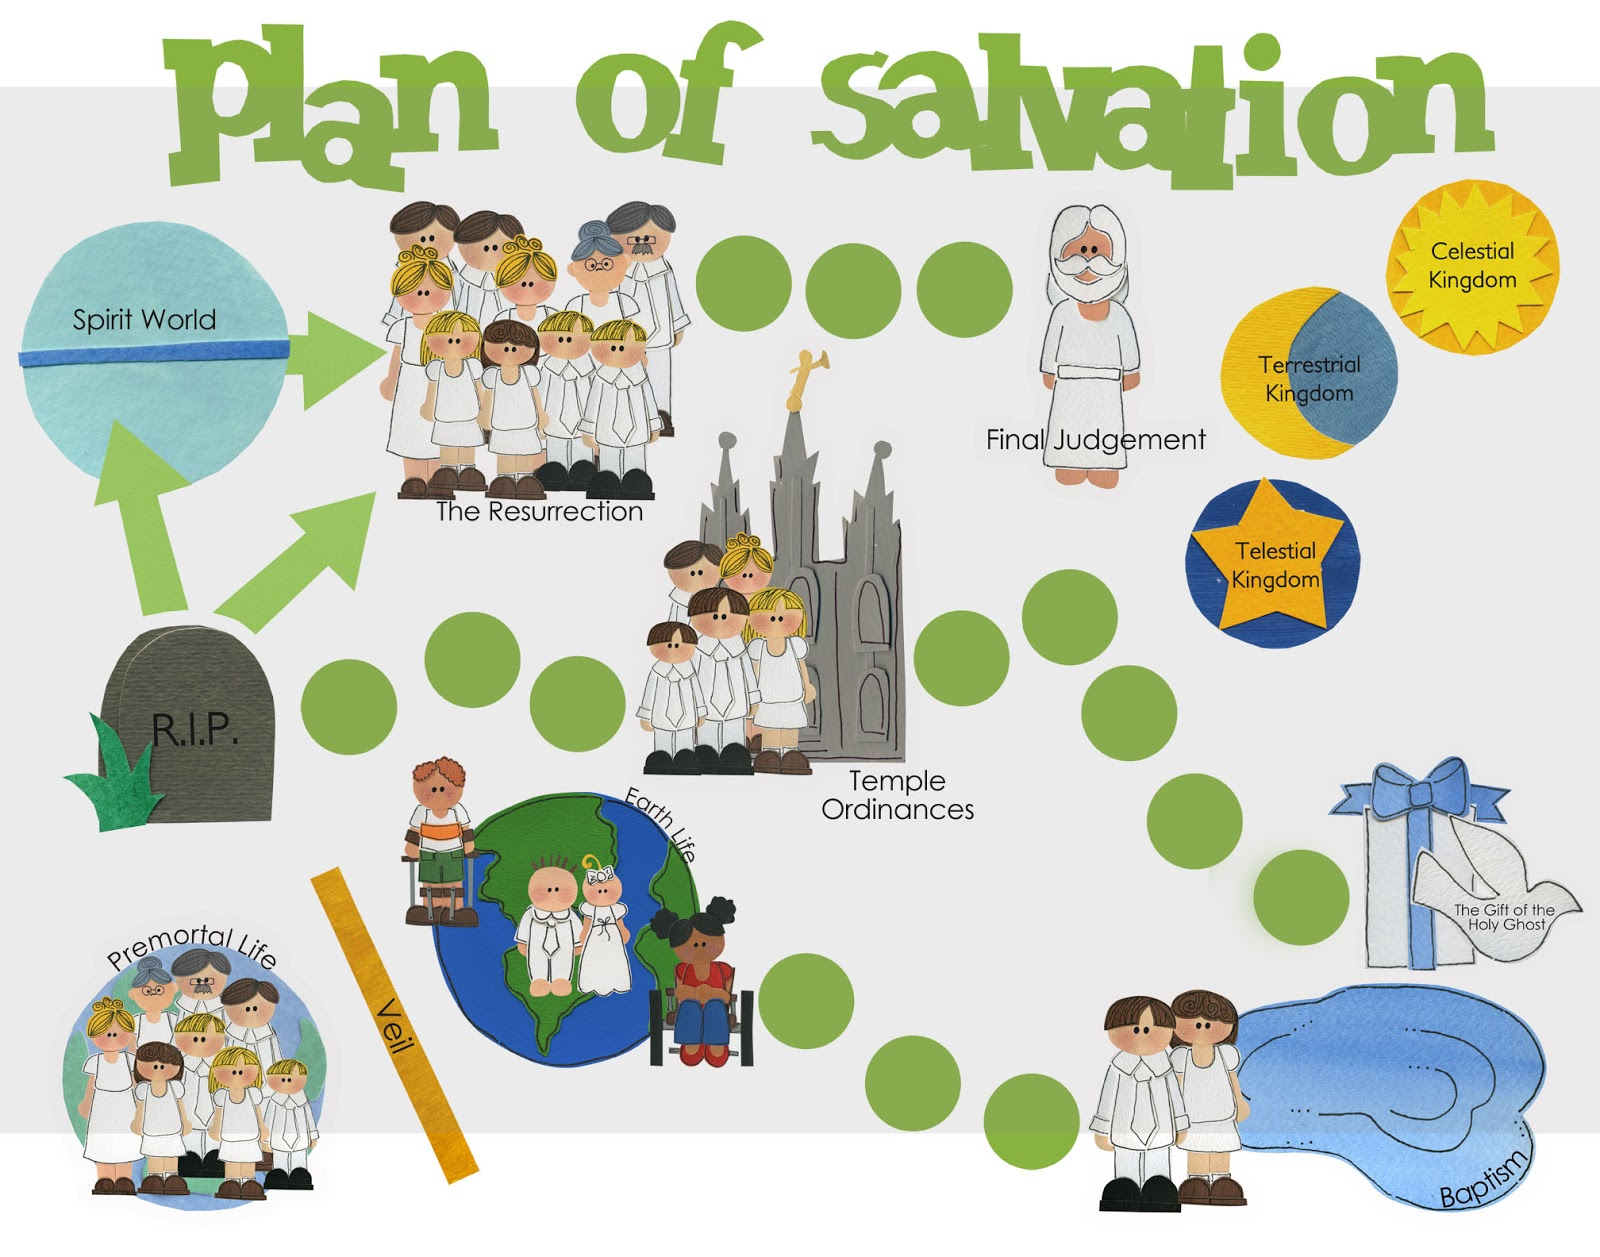 Lds clipart celestial kingdom jpg black and white download 17 Best images about Plan of Salvation on Pinterest | Spirit world ... jpg black and white download